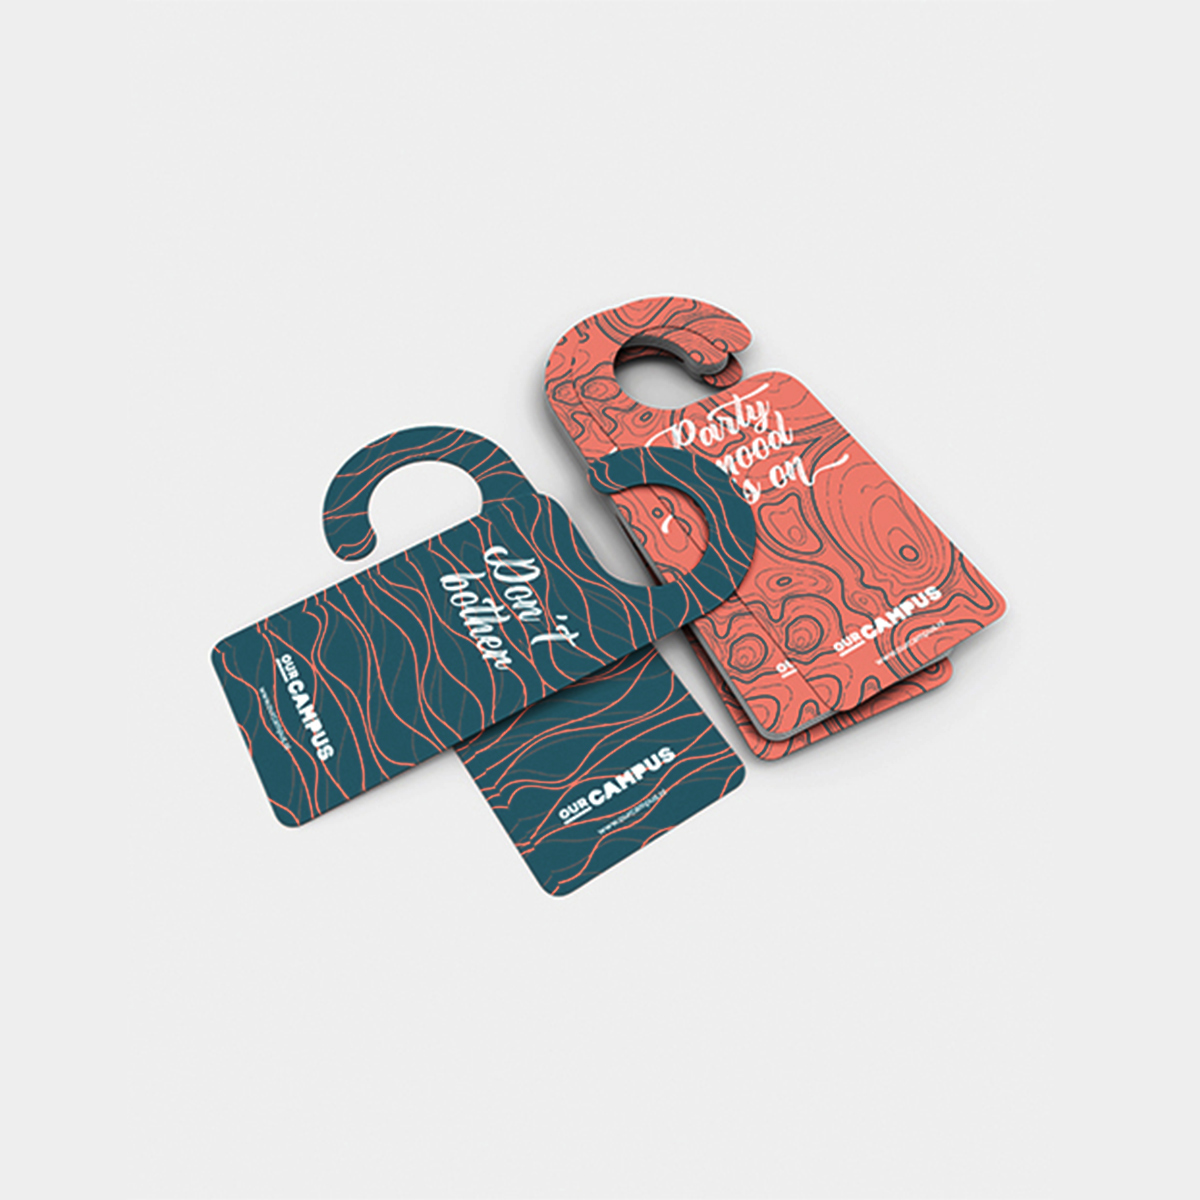 SPX Agency Work: OurCampus Door hanger